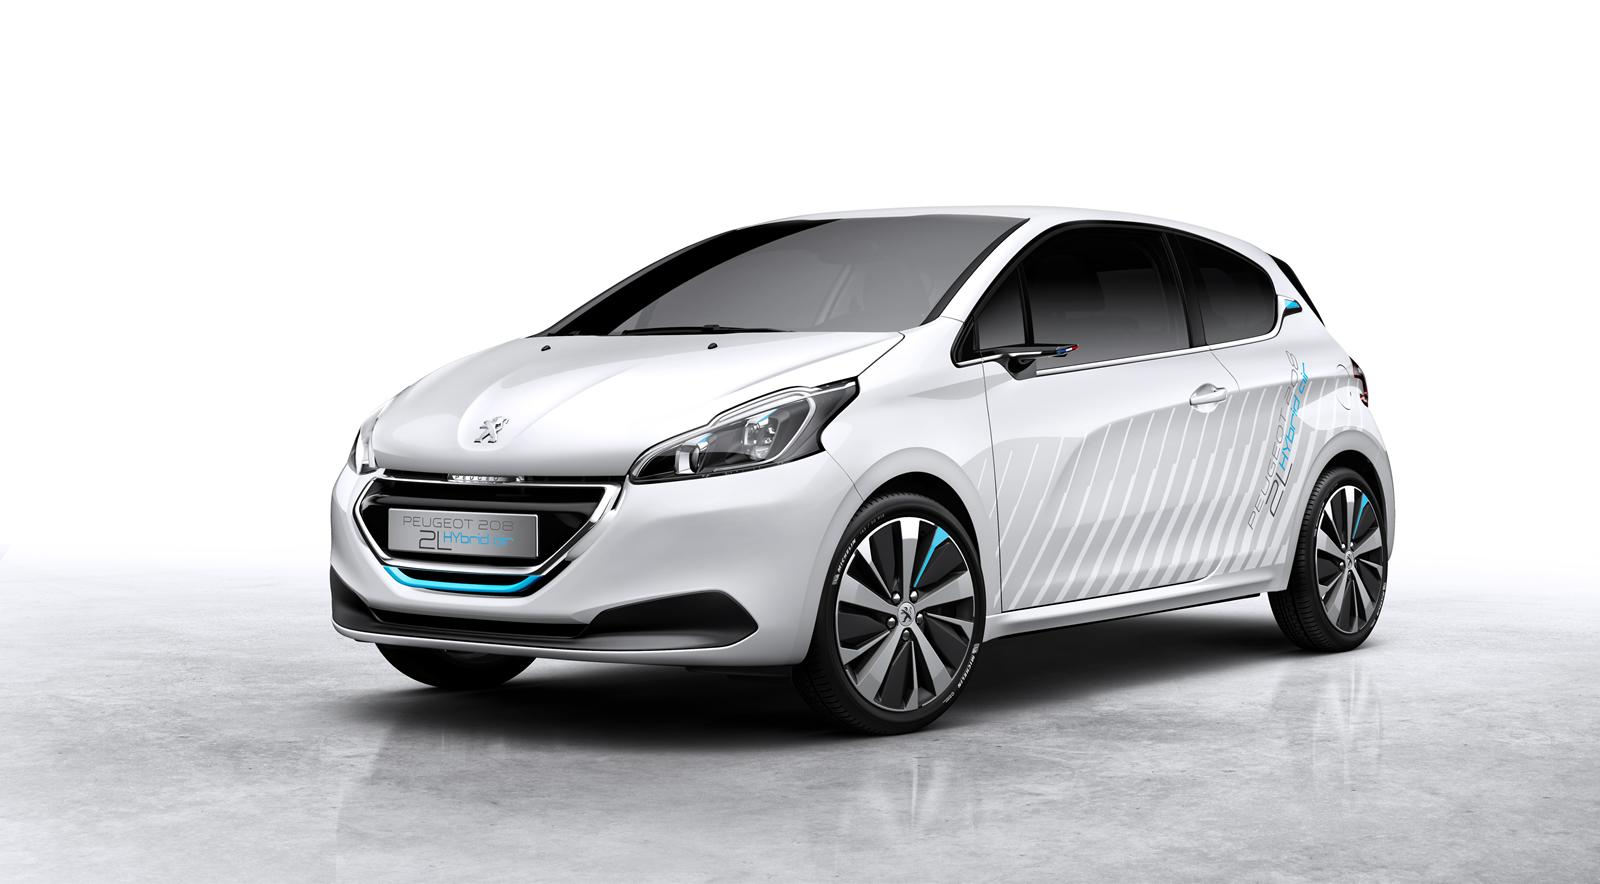 hybrid air tech edges closer to production reality with peugeot 208 concept. Black Bedroom Furniture Sets. Home Design Ideas